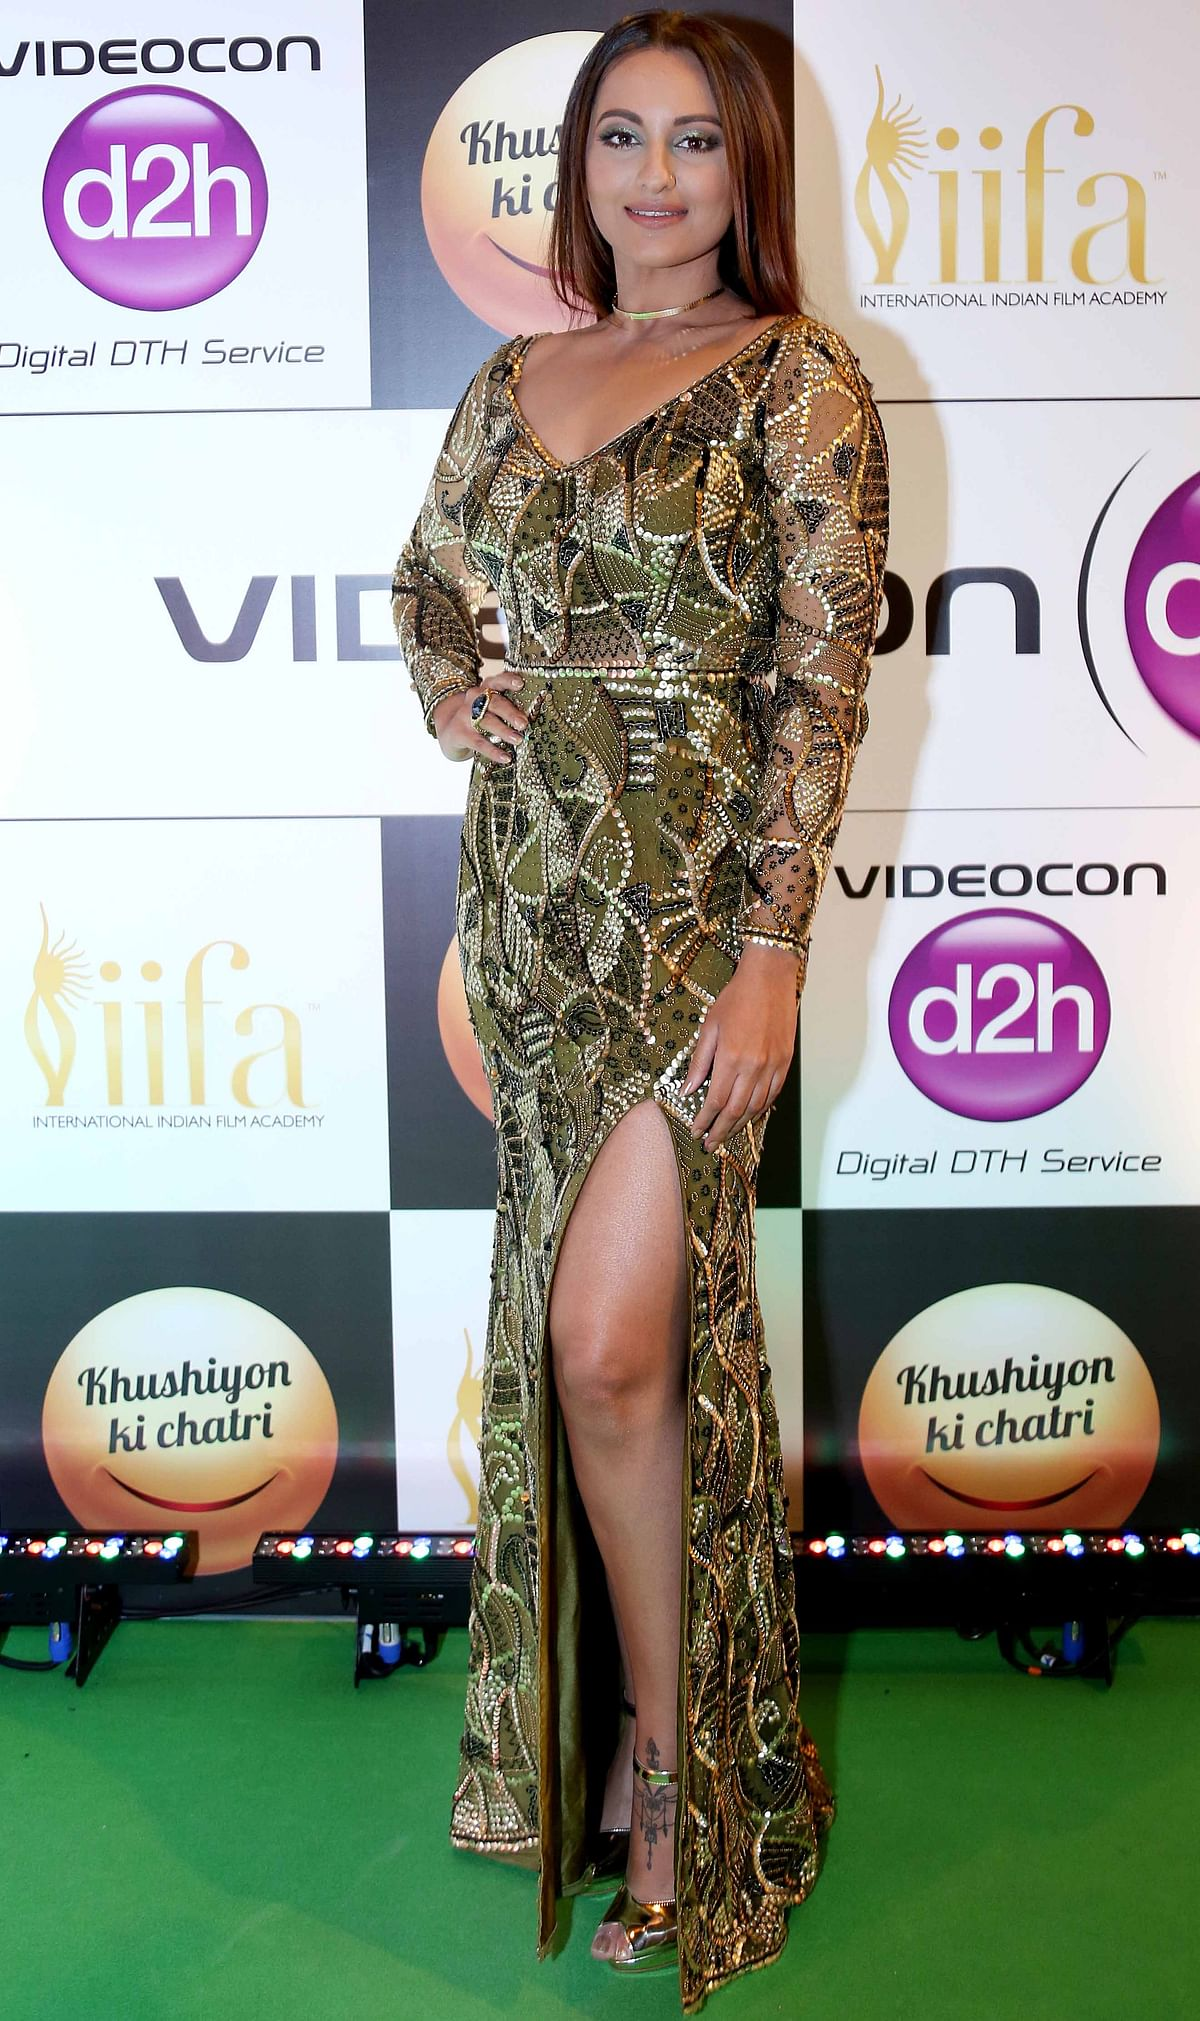 Sonakshi Sinha looks stunning in a bold green and gold ensemble designed by Zara Umrigar (Photo: Yogen Shah)